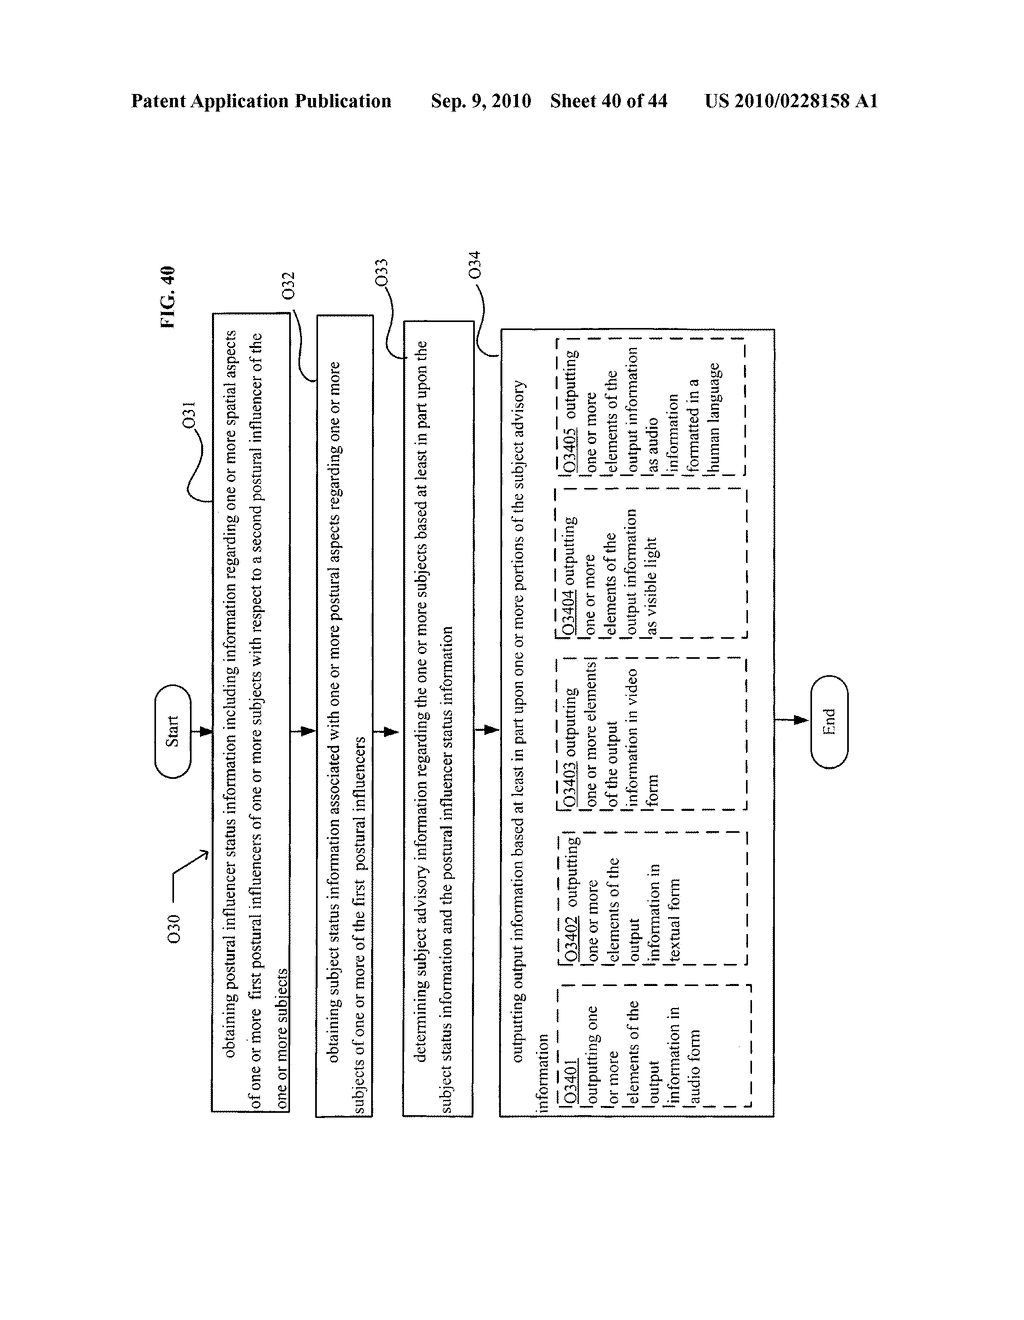 POSTURAL INFORMATION SYSTEM AND METHOD INCLUDING DEVICE LEVEL DETERMINING OF SUBJECT ADVISORY INFORMATION BASED ON SUBJECT STATUS INFORMATION AND POSTURAL INFLUENCER STATUS INFORMATION - diagram, schematic, and image 41